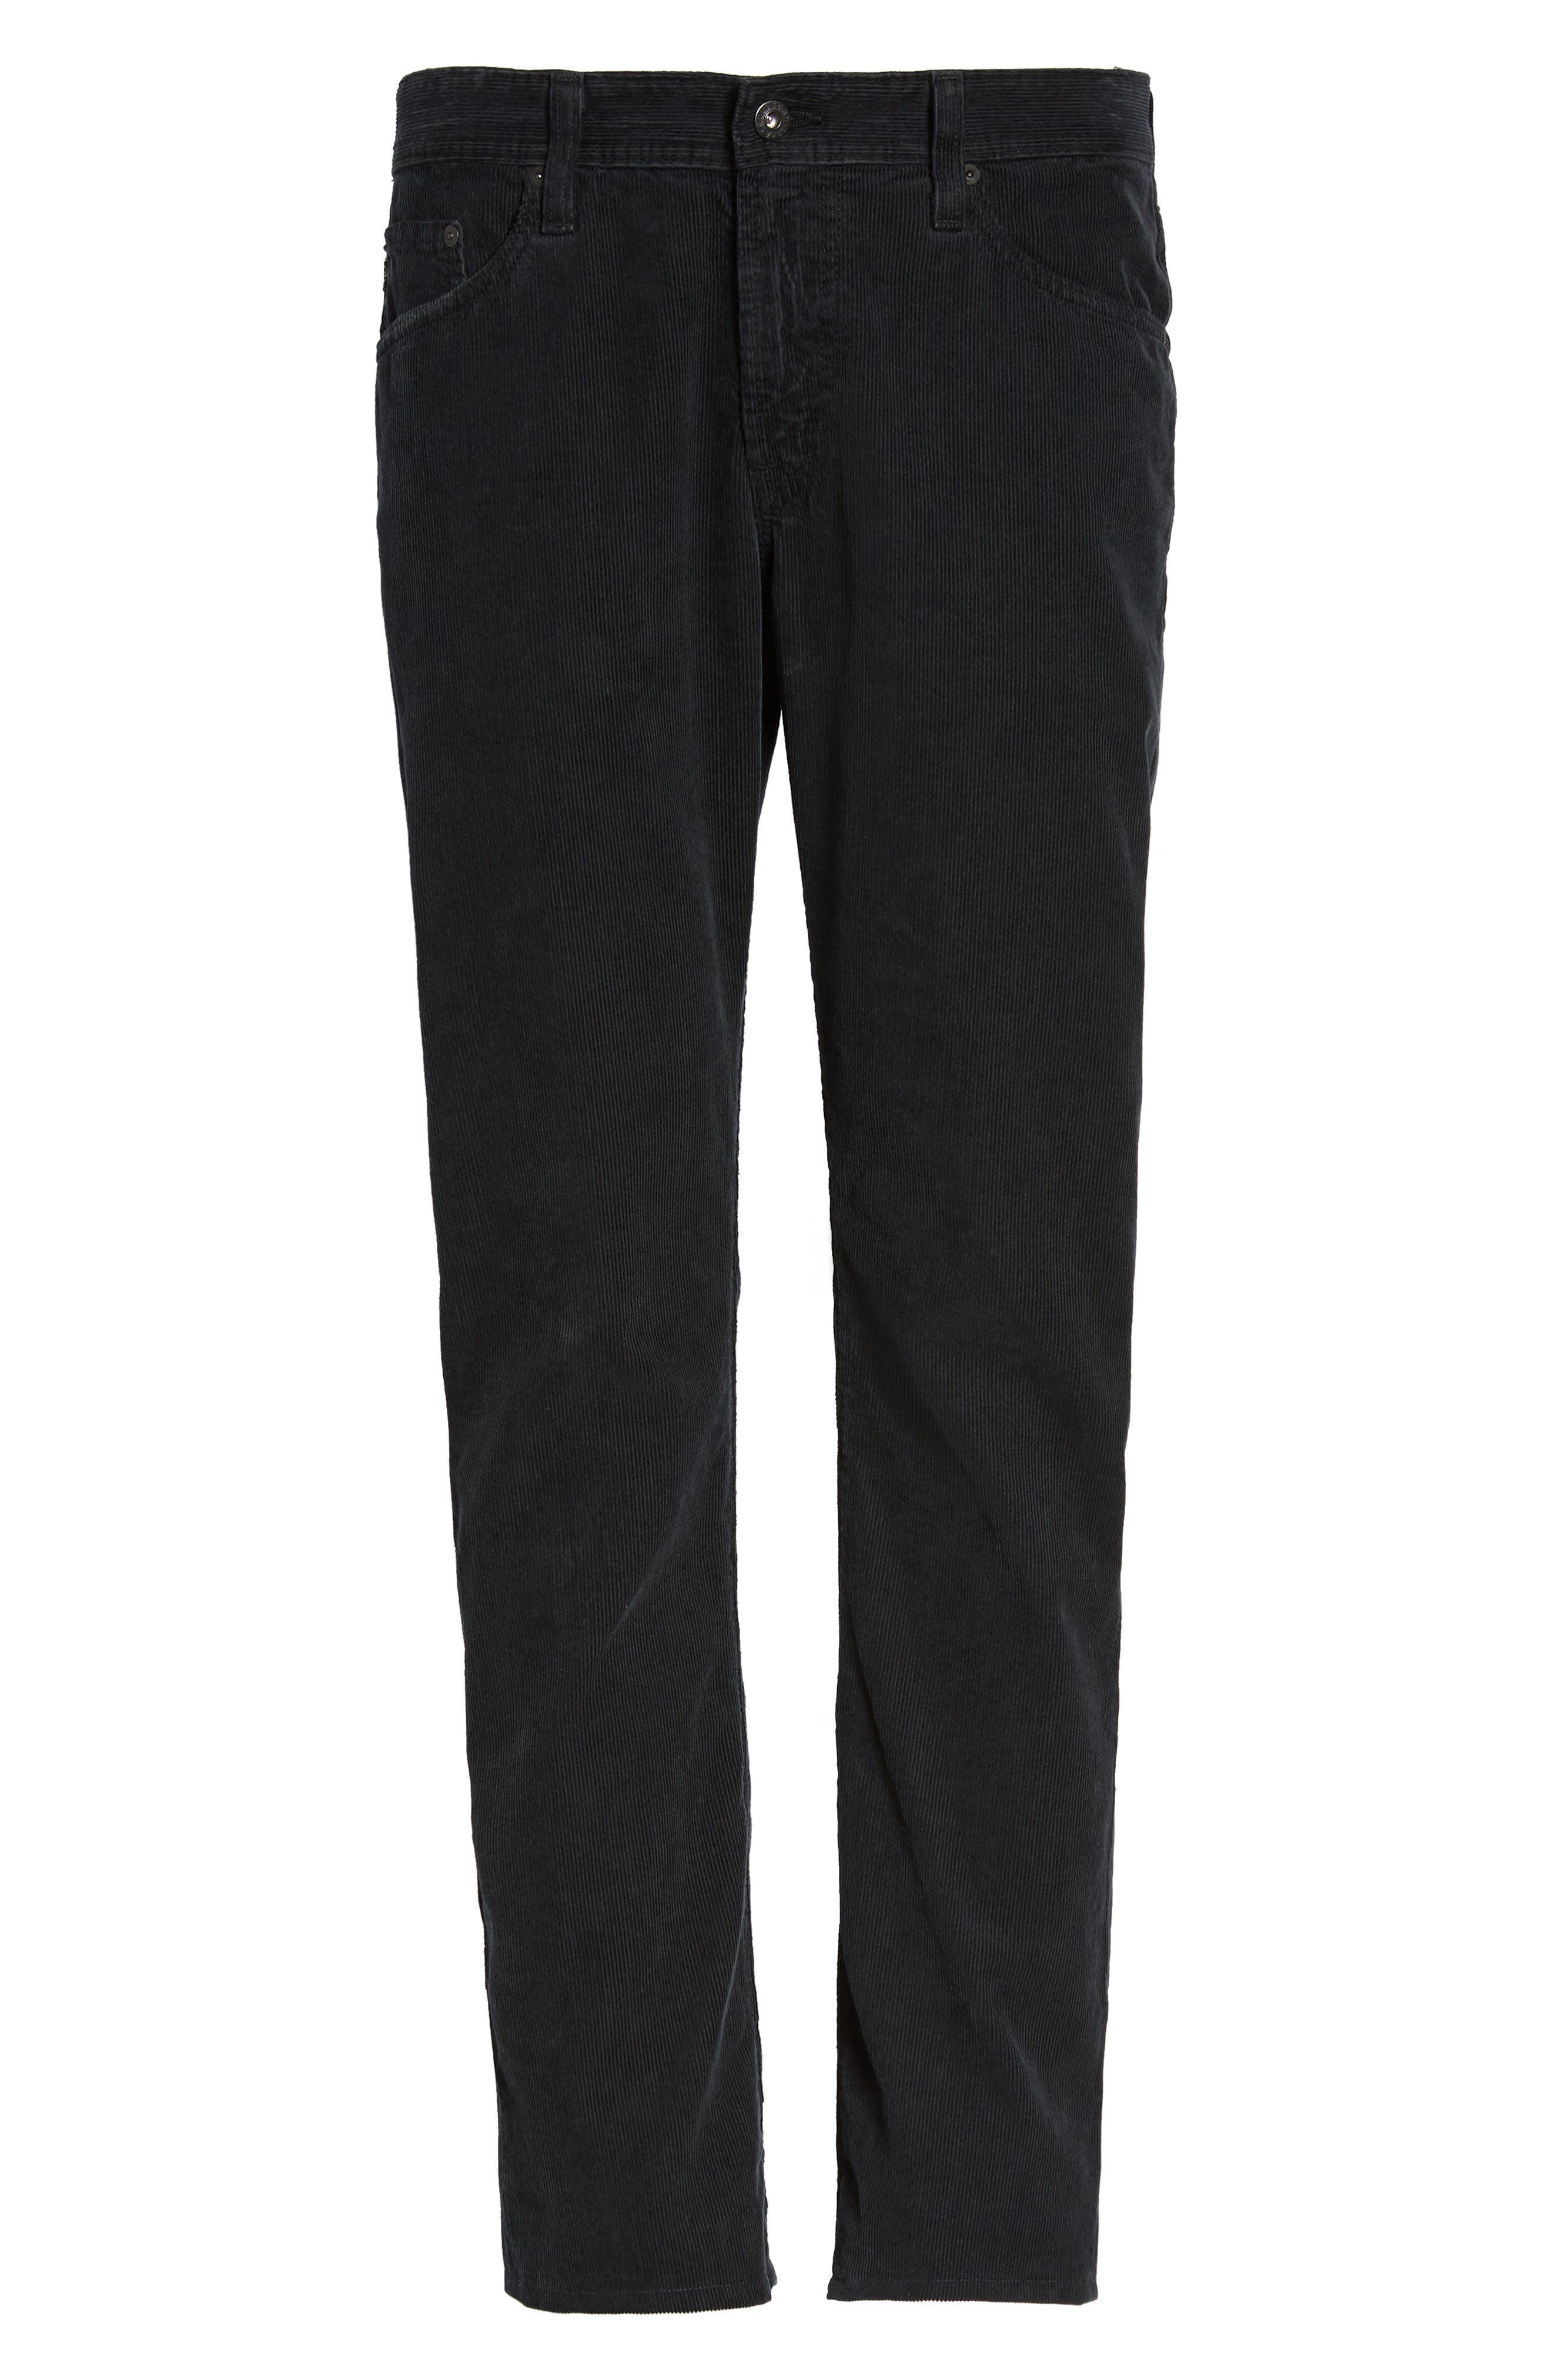 'Graduate' Tailored Straight Leg Corduroy Pants,                             Alternate thumbnail 6, color,                             017